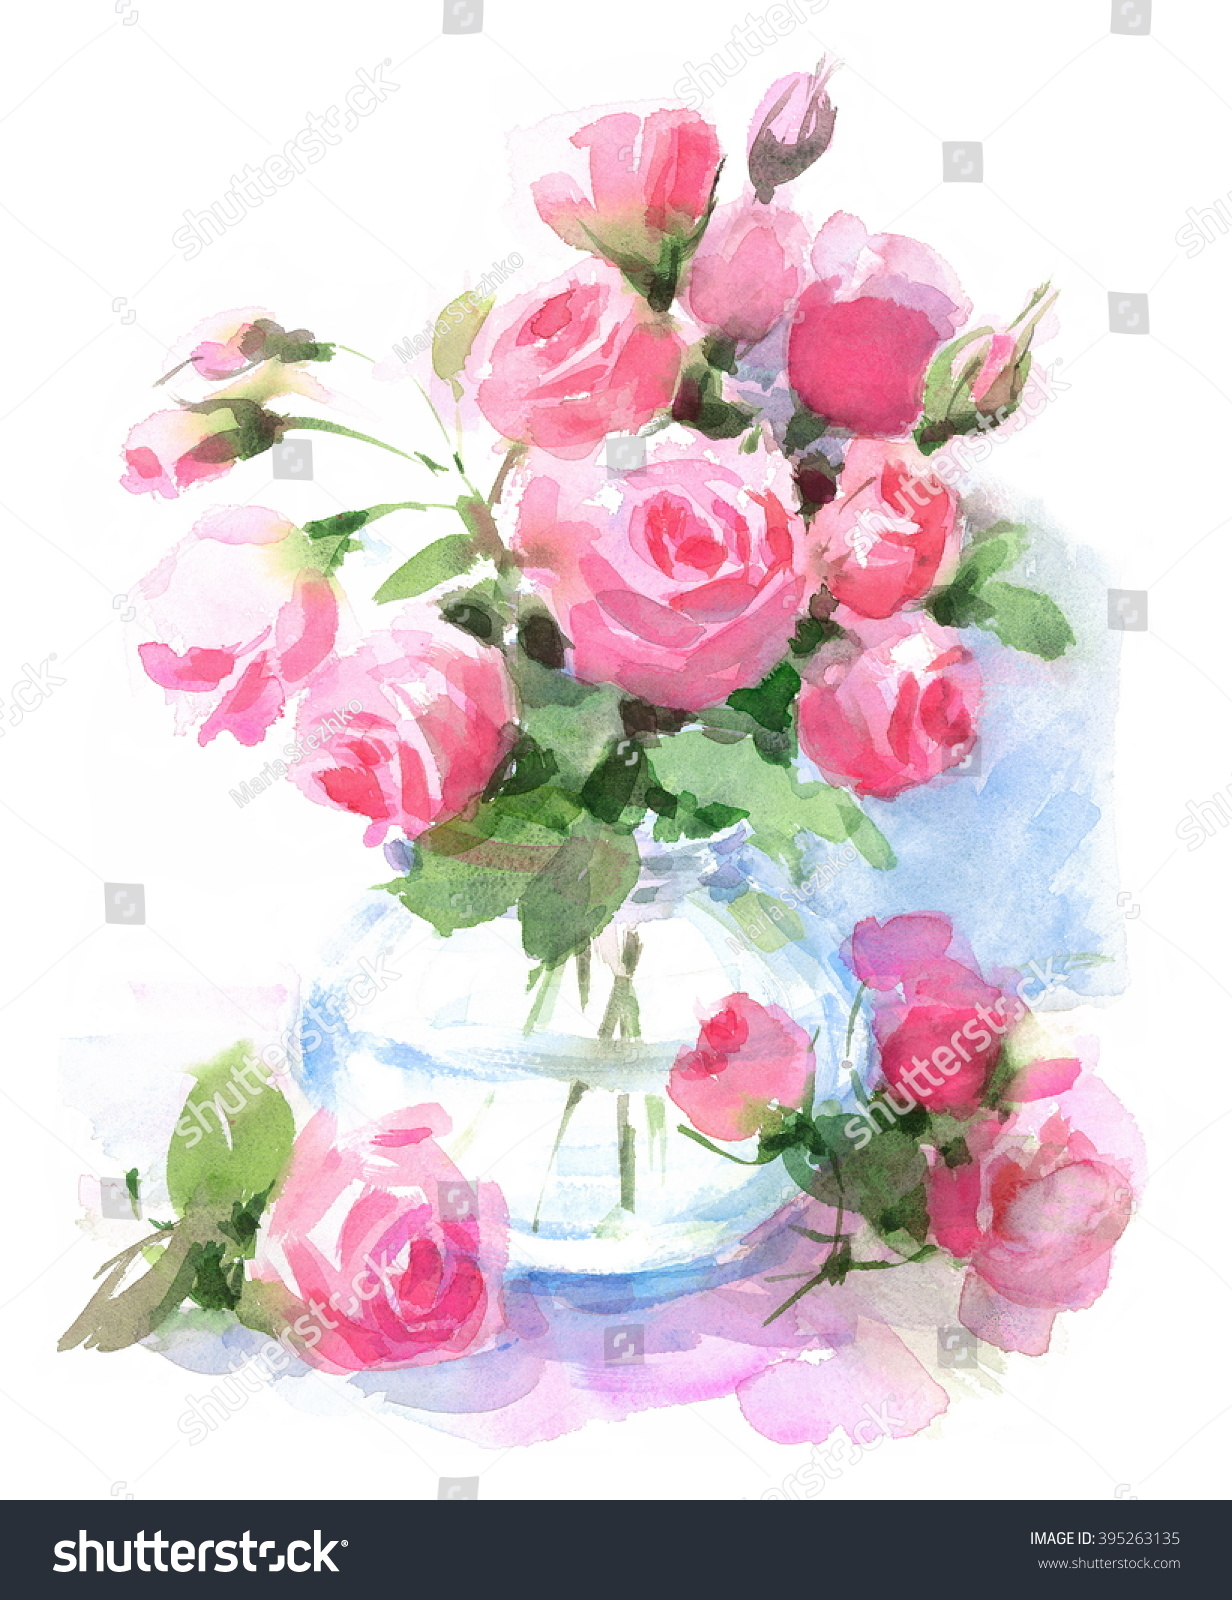 Watercolor roses flowers vase floral hand stock illustration watercolor roses flowers in a vase floral hand painted illustration isolated on white background floridaeventfo Images